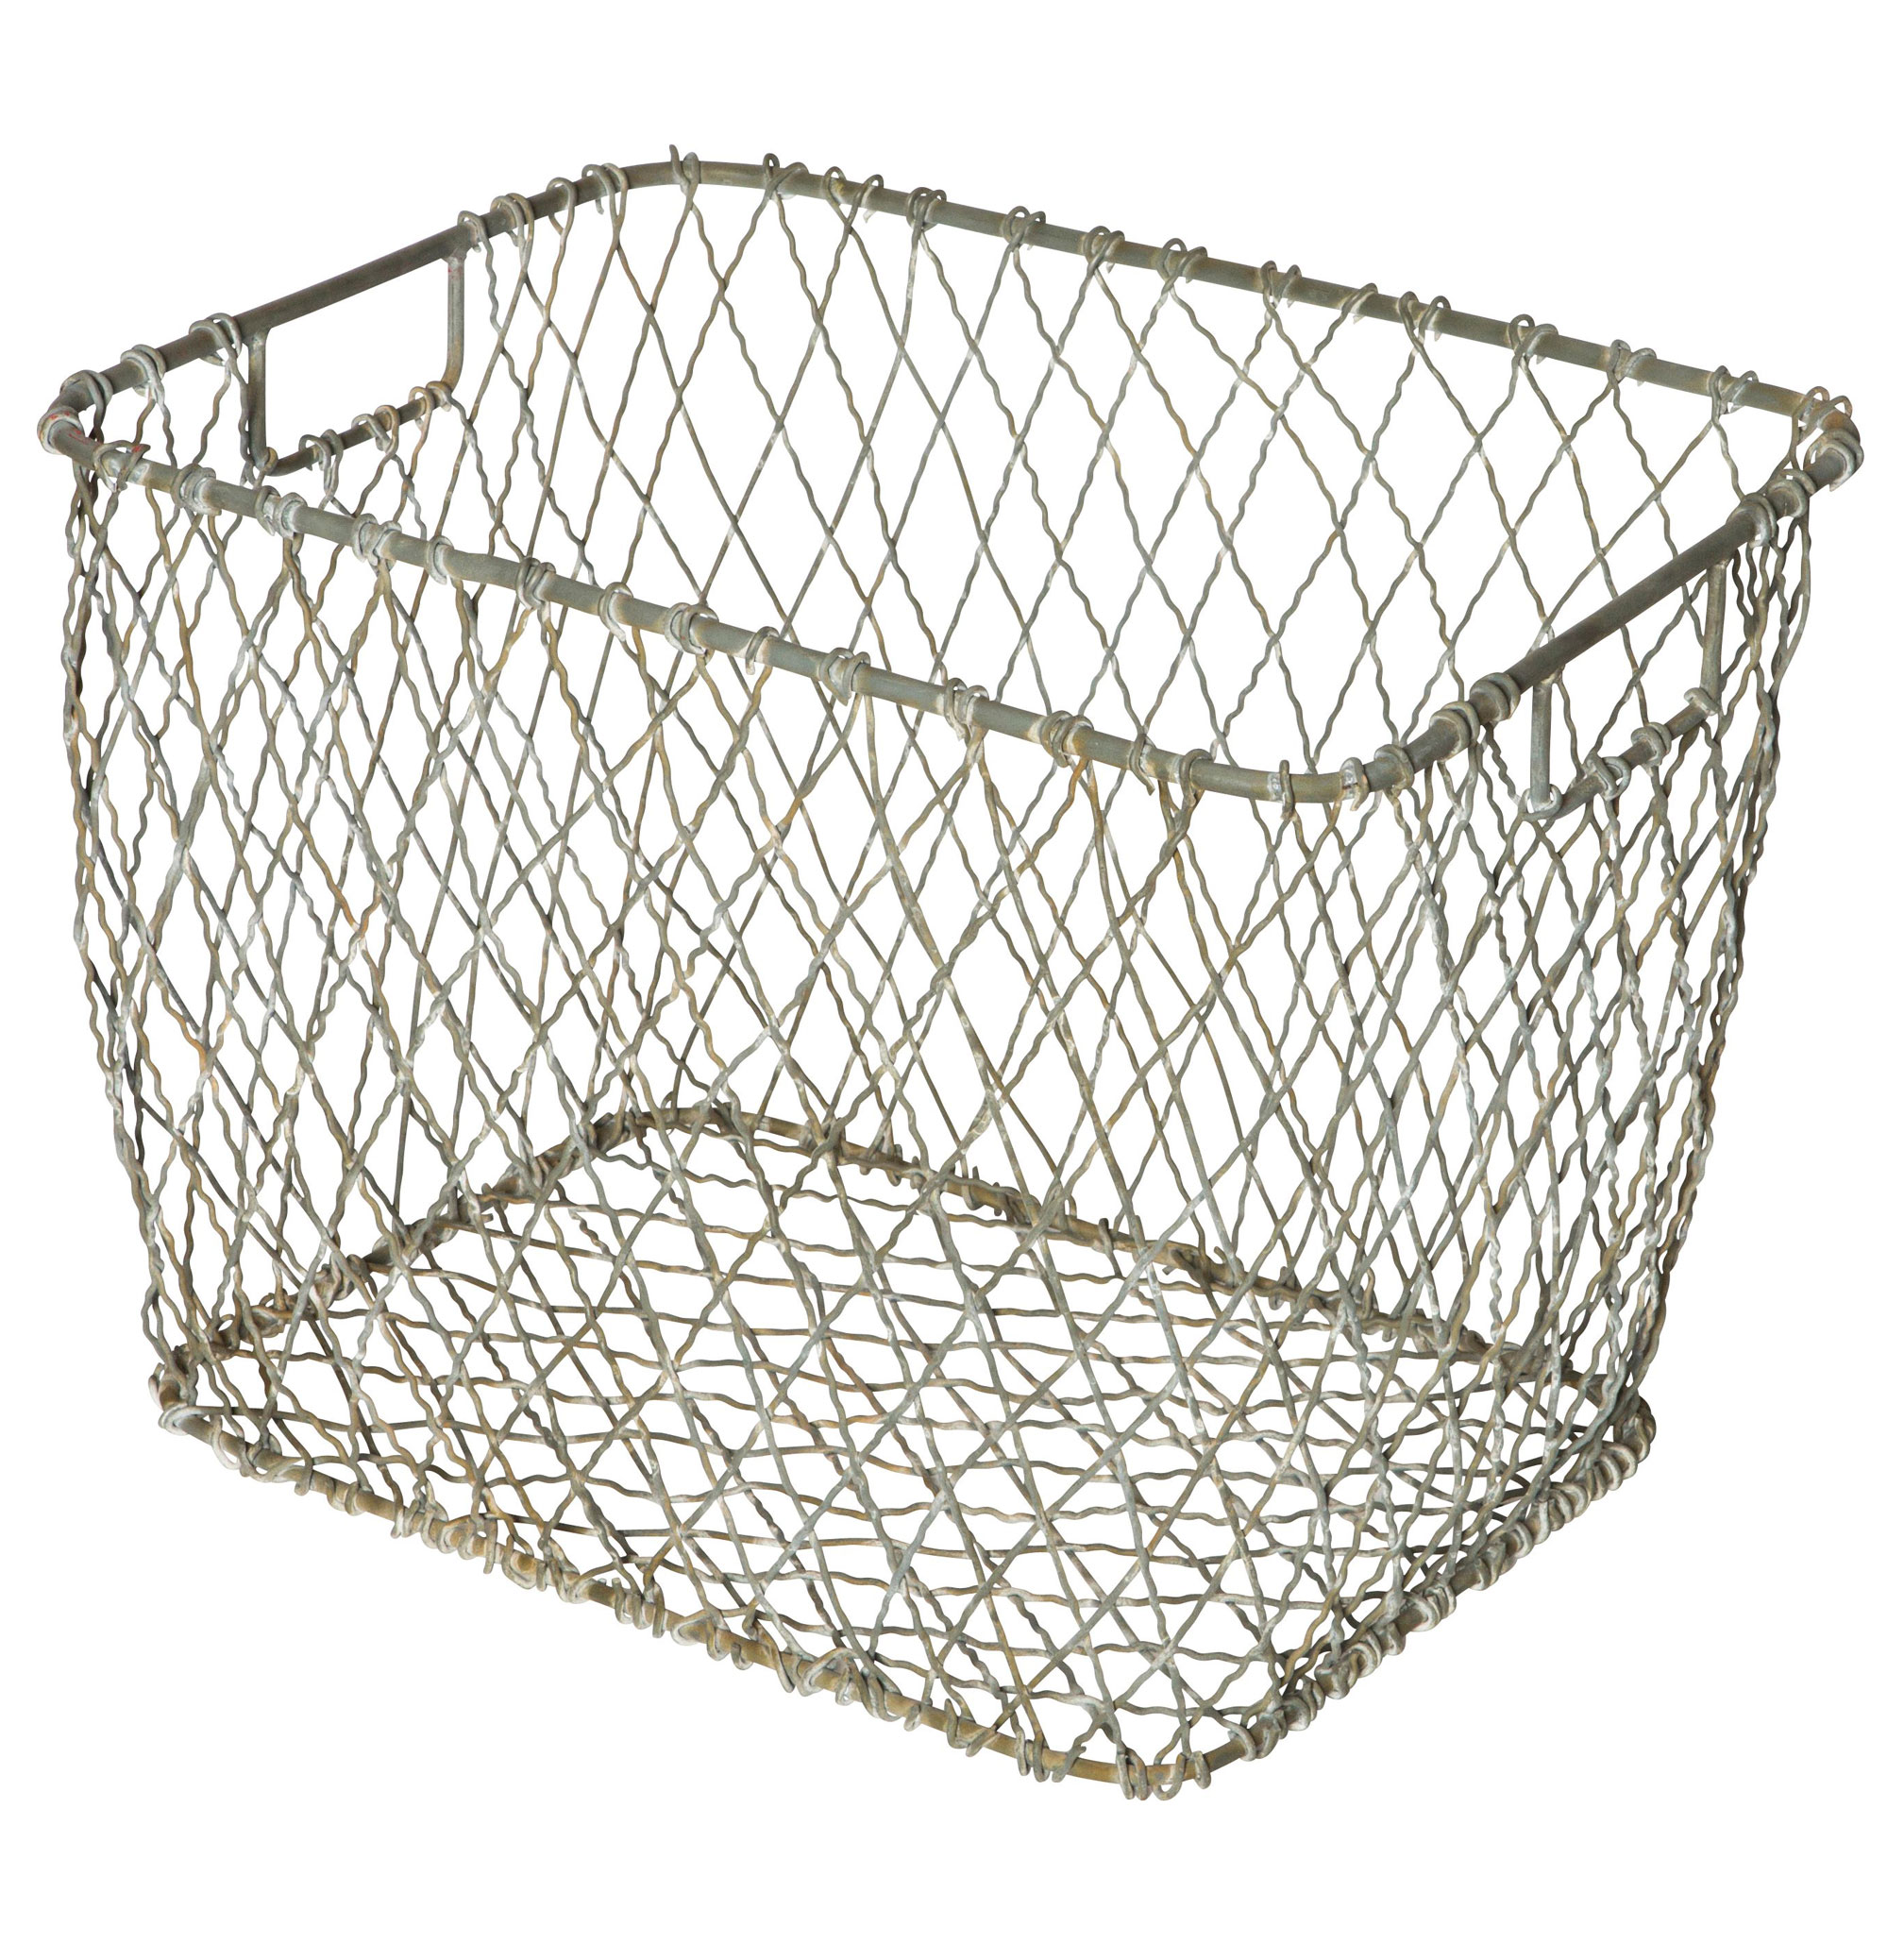 Designer Floor Baskets - Eclectic Floor Baskets | Kathy Kuo Home